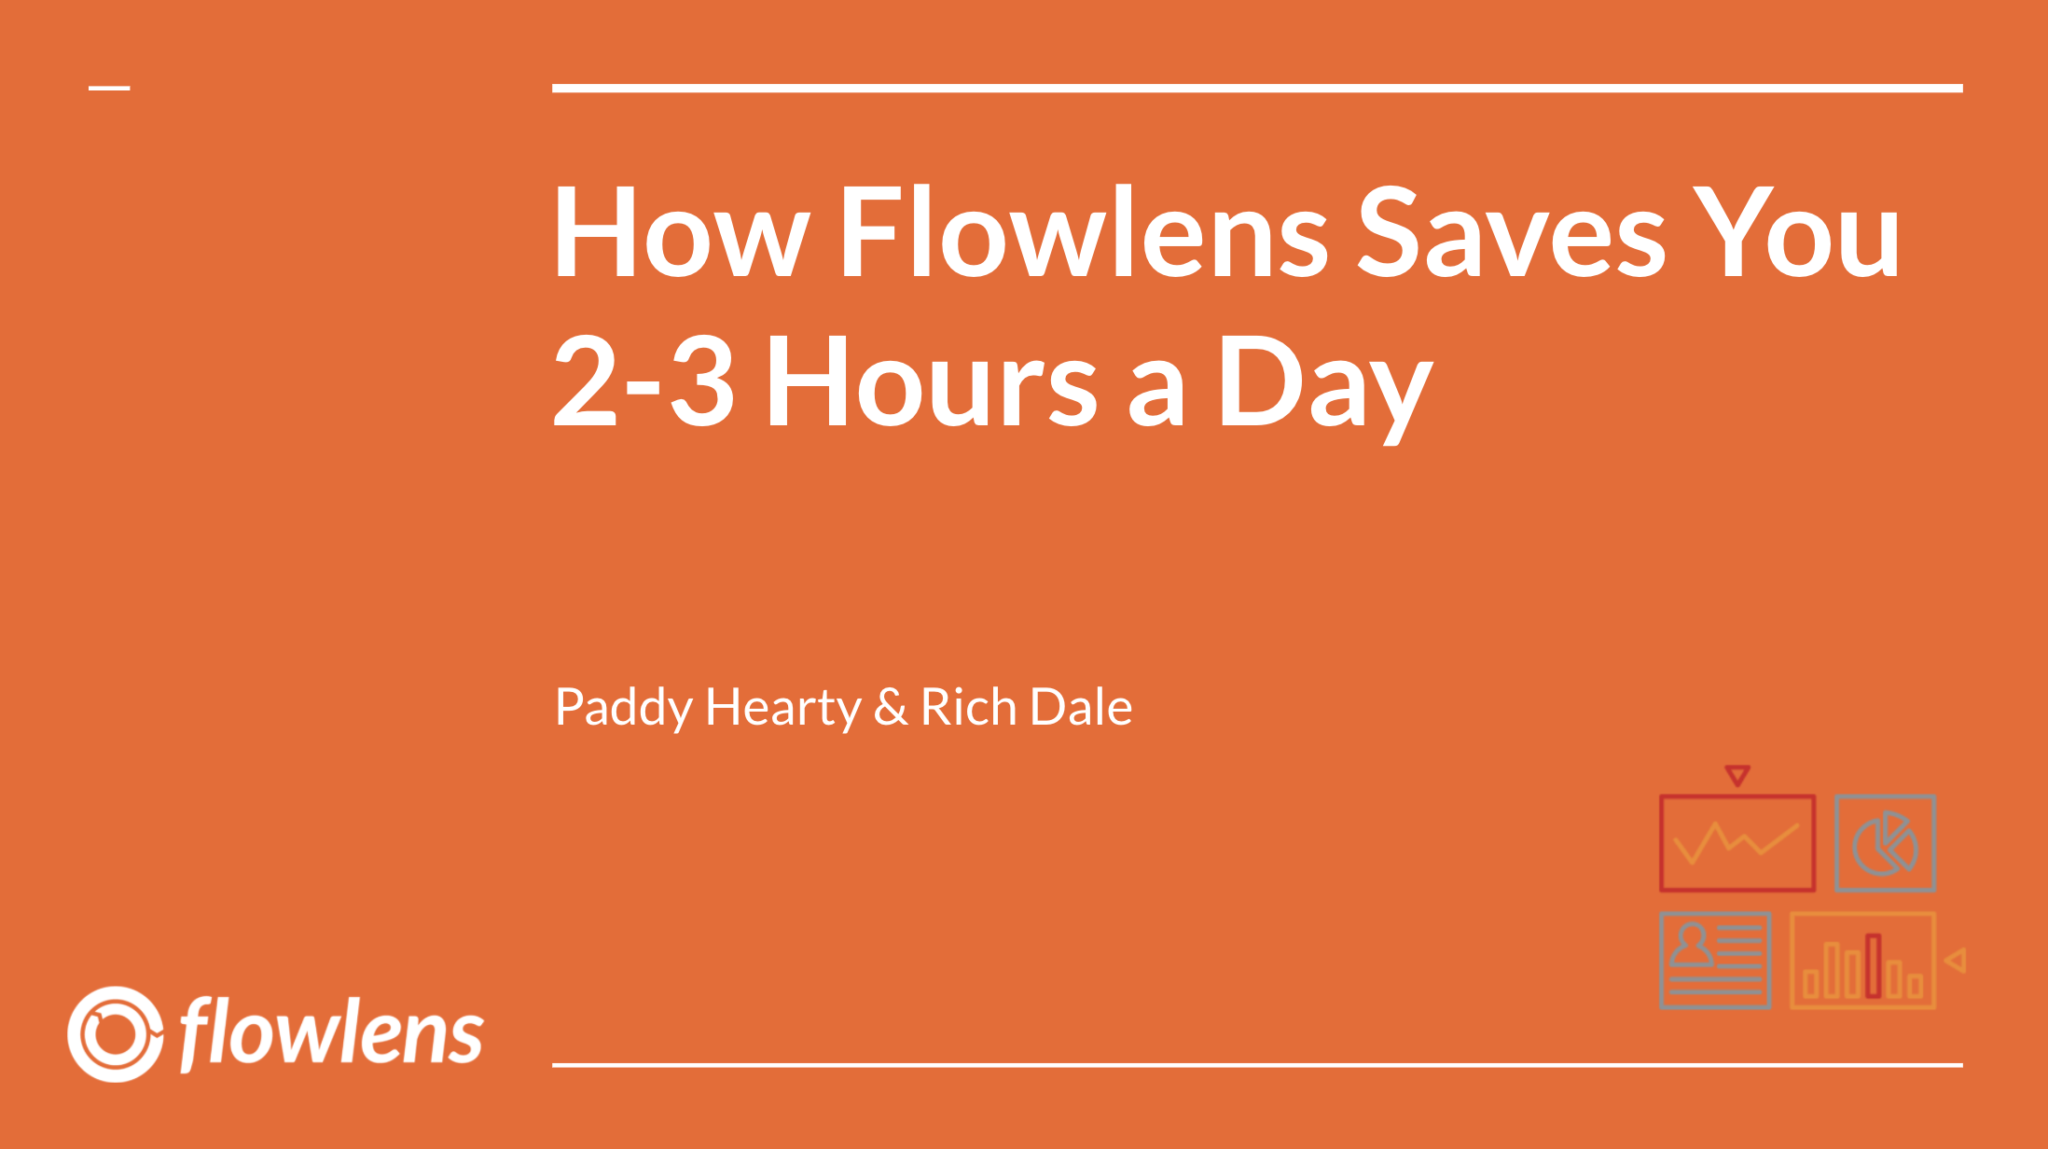 How Flowlens Can Save You 2-3 Hours Per Day